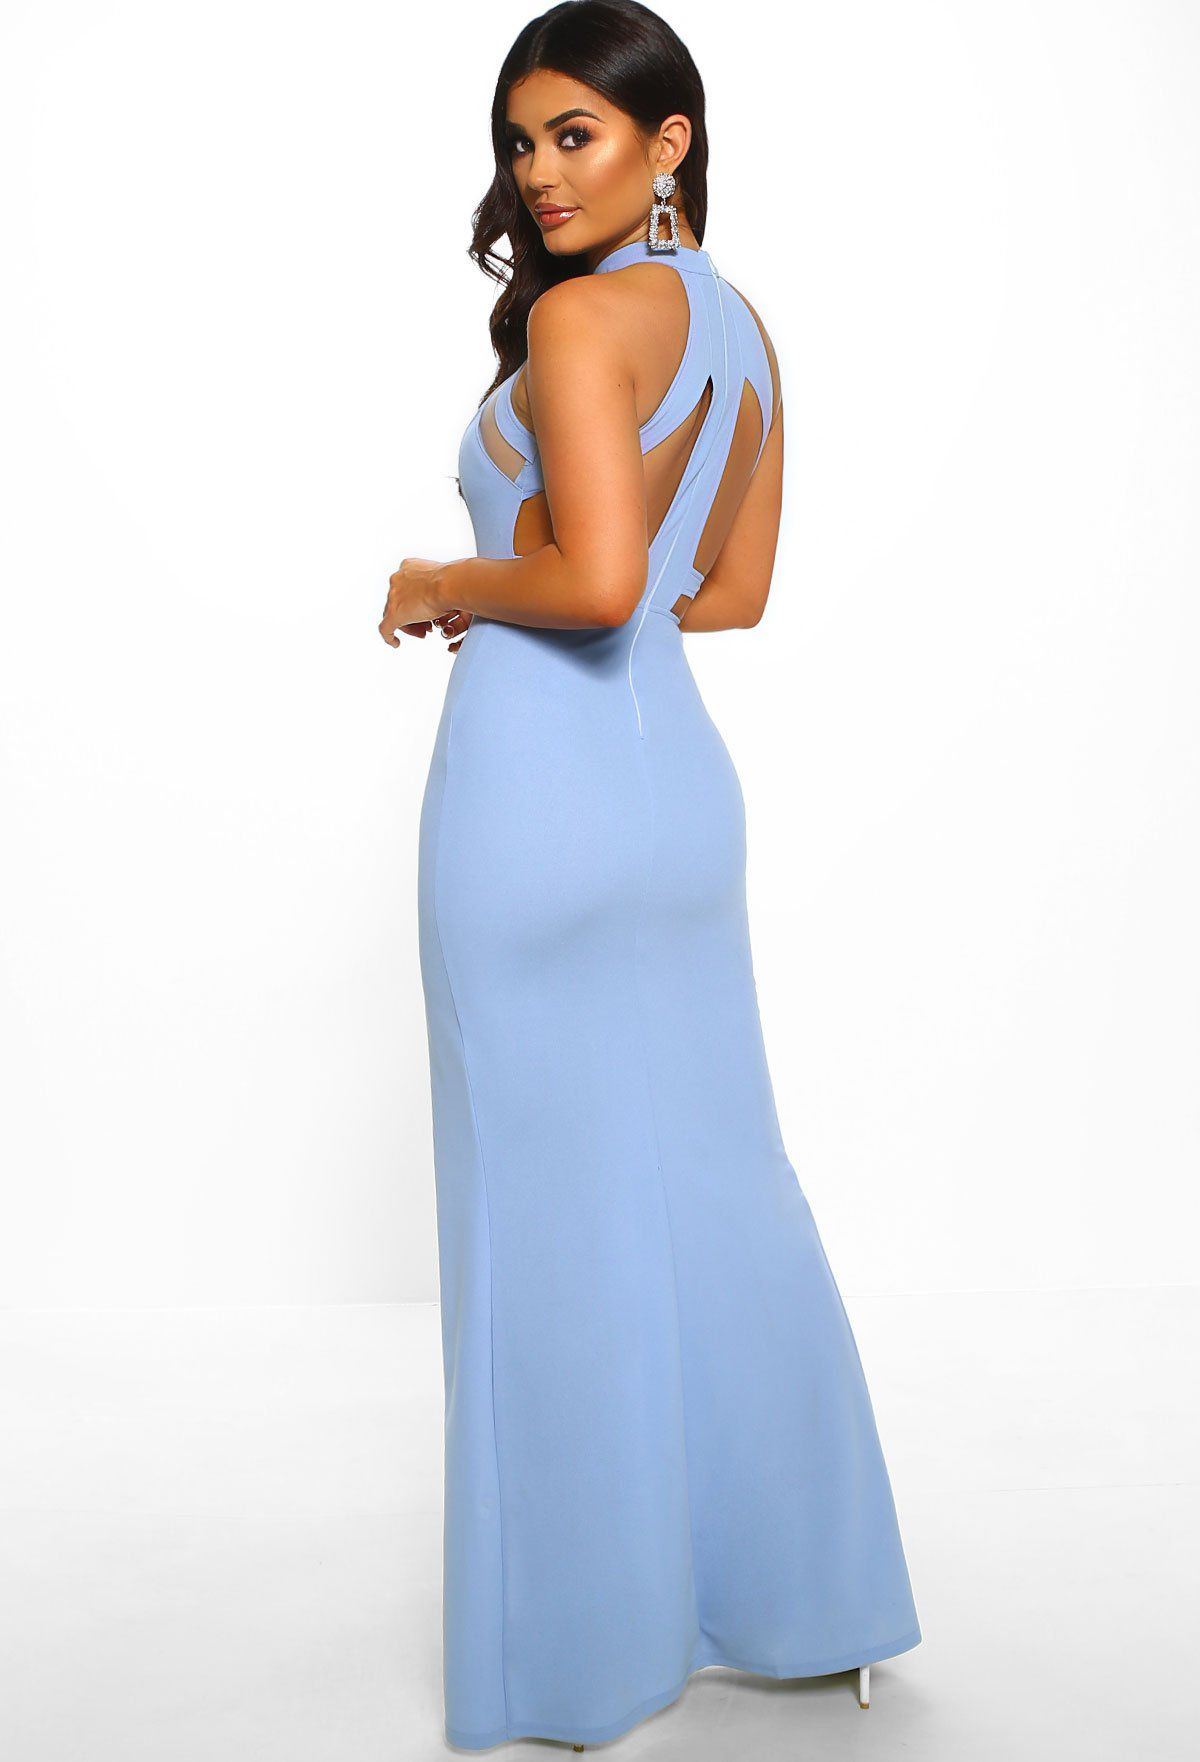 Miss Congeniality Powder Blue Cut Out Maxi Dress 12 In 2019